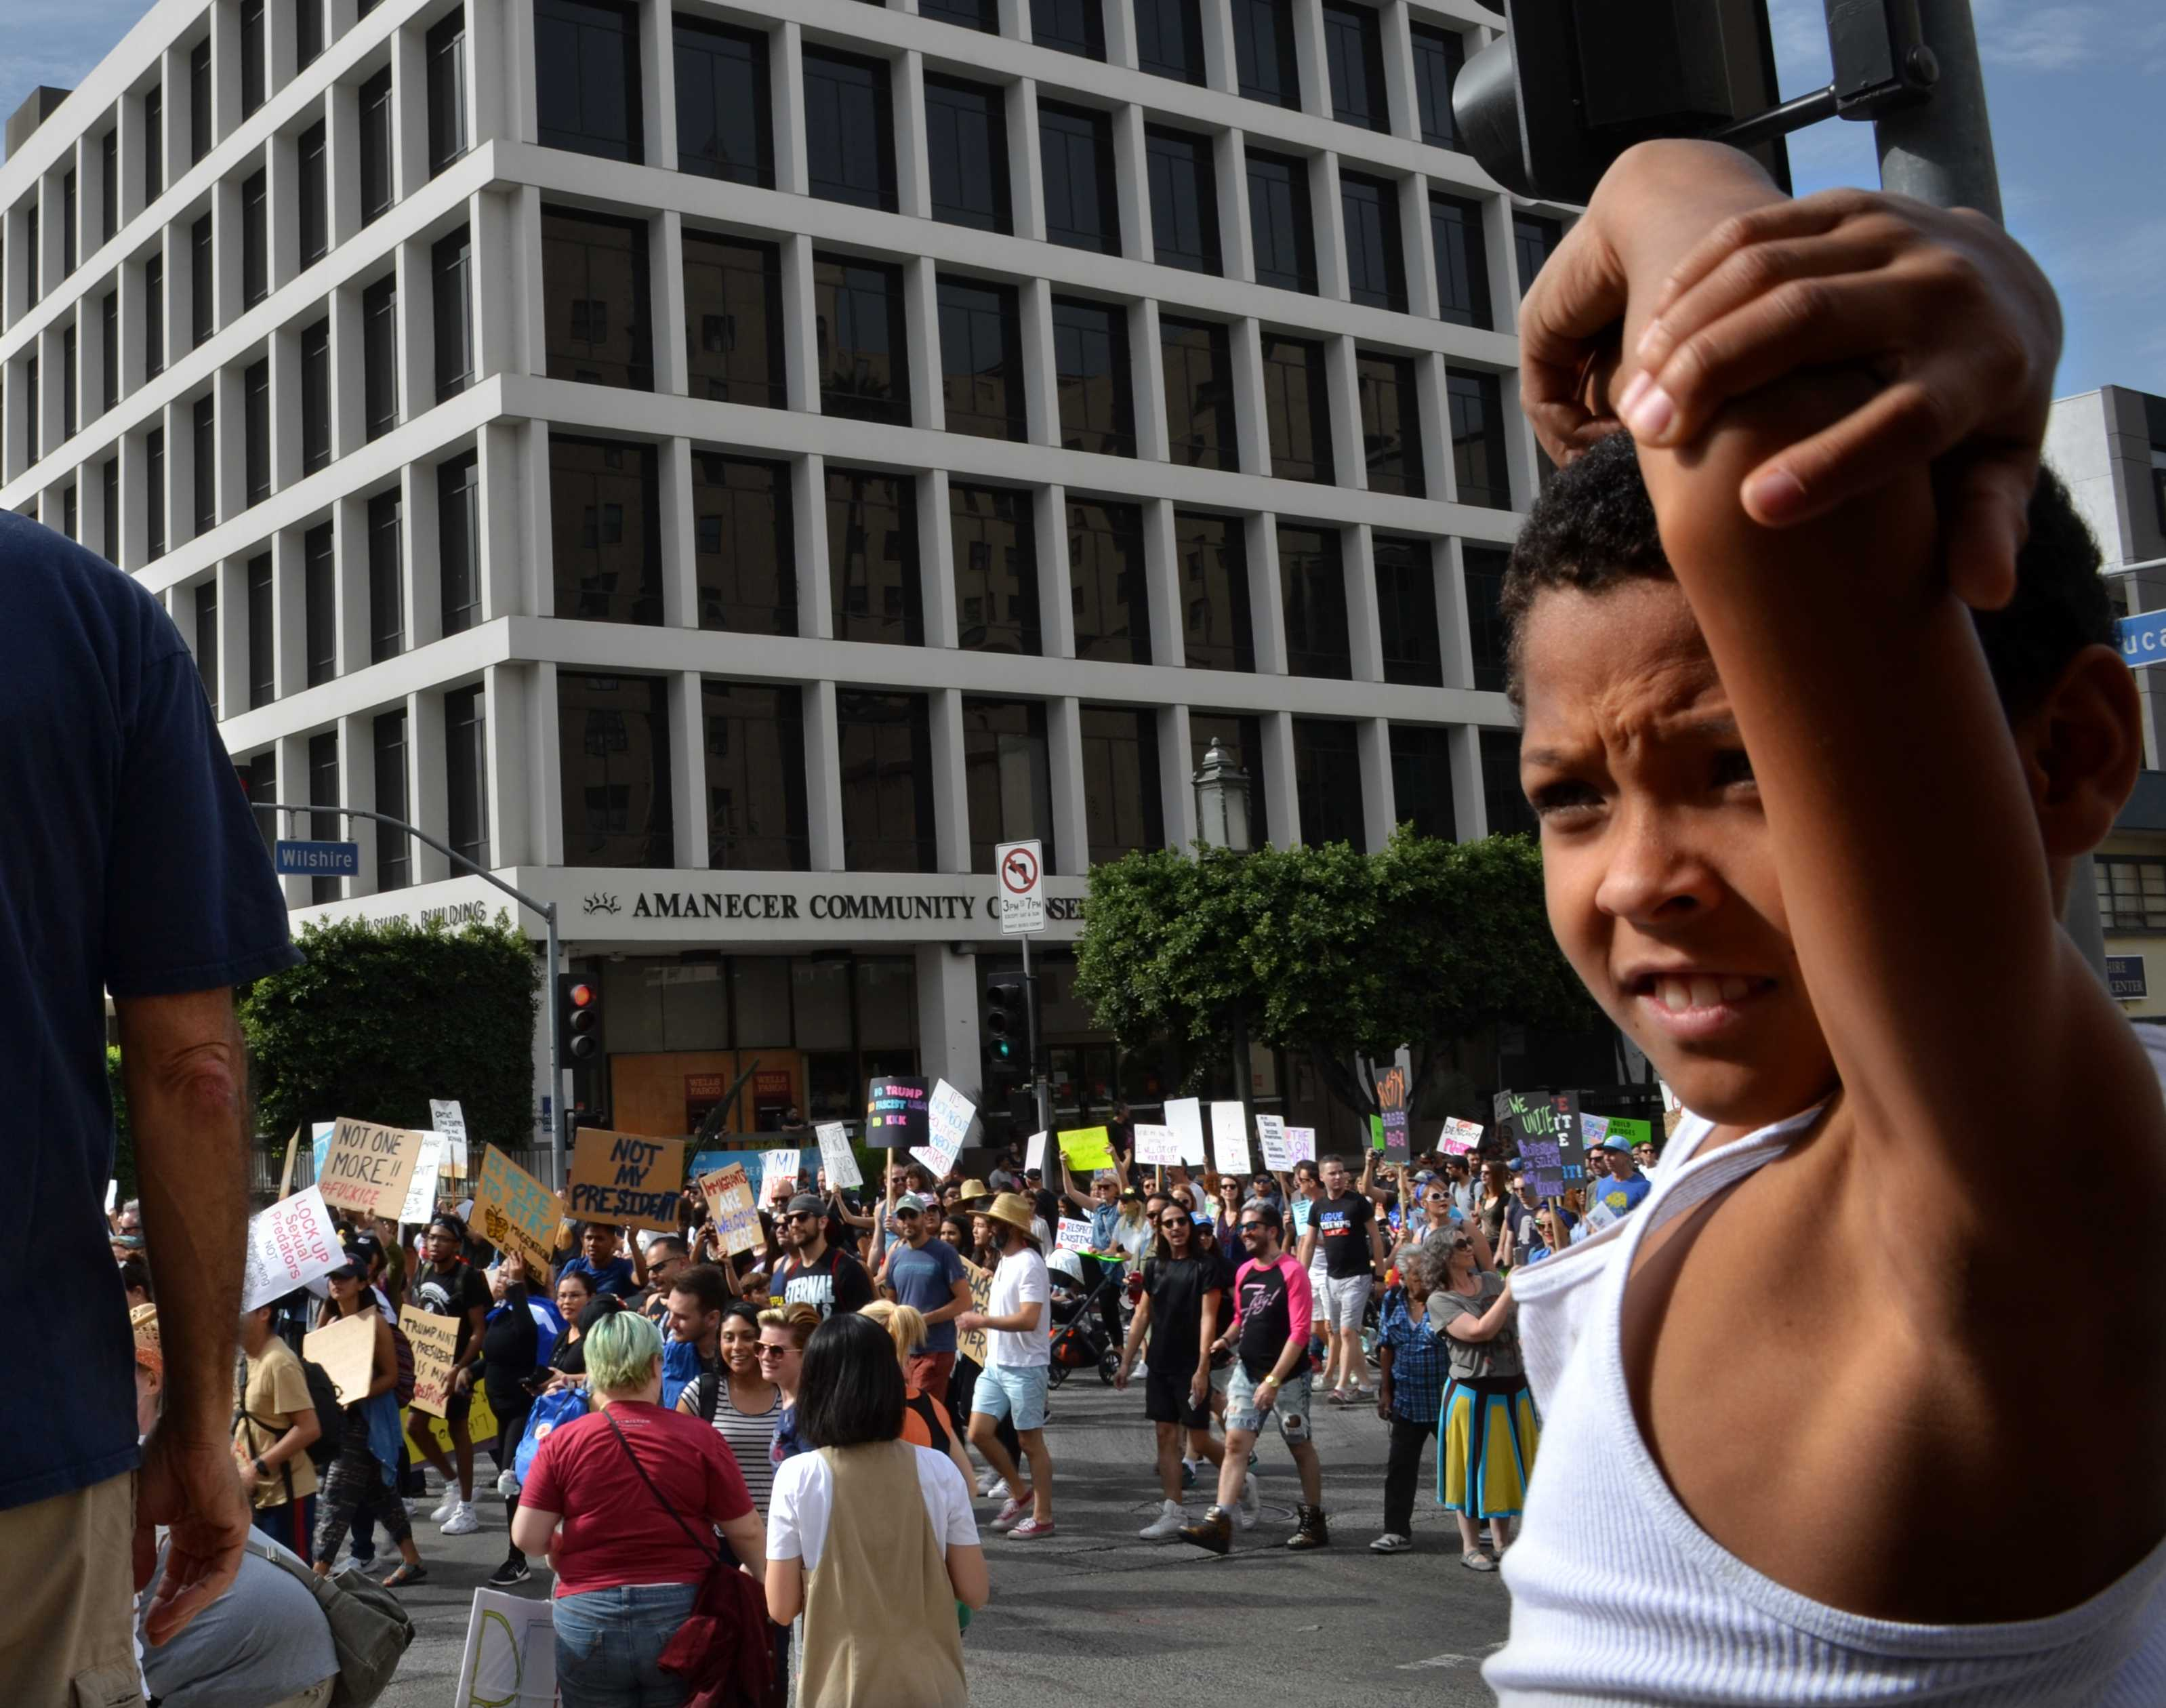 Small child shown in front of protesters